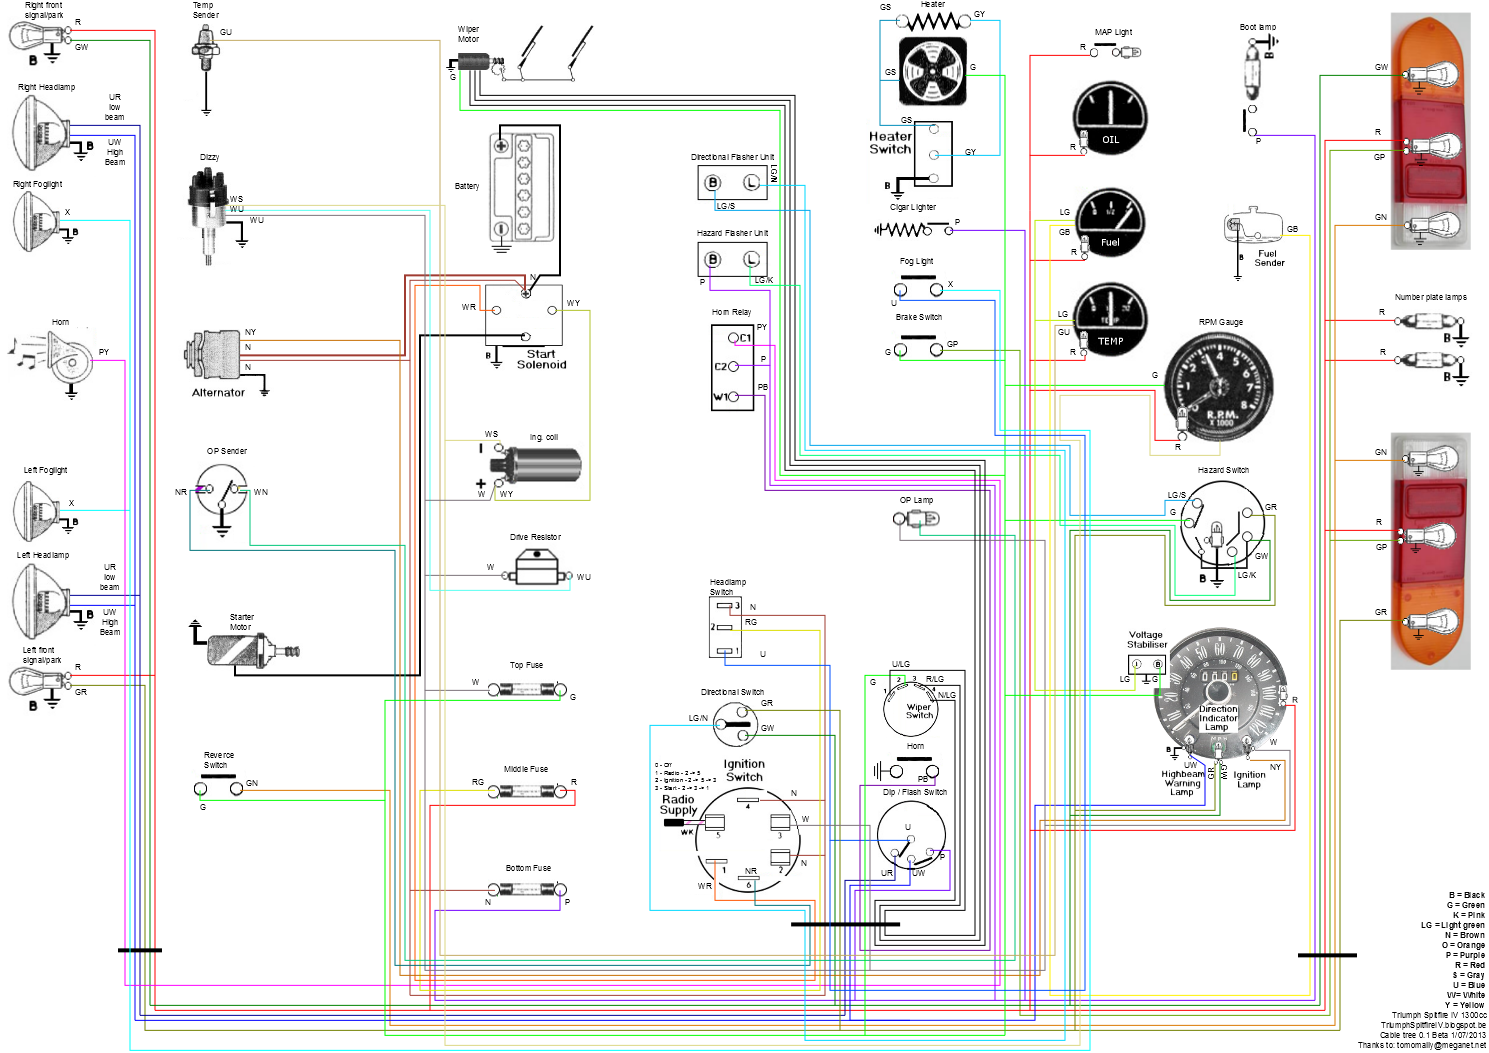 spitfire iv wiring diagram spitfire mkiv wiring diagram how to library the triumph experience 73 triumph spitfire 1500 wiring harness at aneh.co